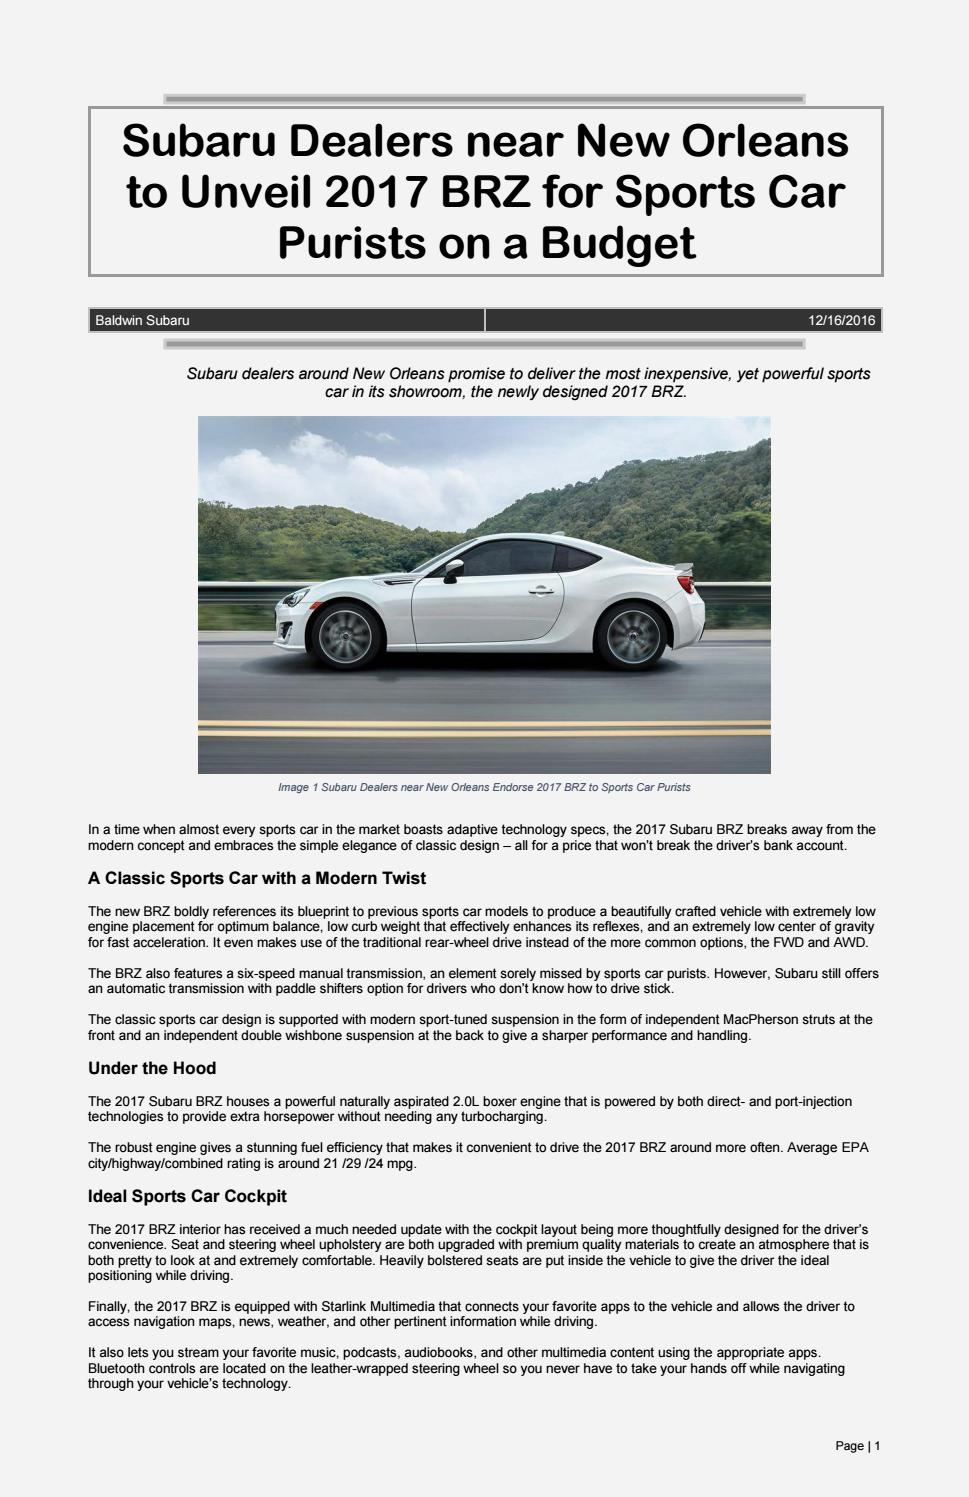 Subaru Dealers Near New Orleans To Unveil 2017 Brz For Sports Car Boxer Engine Diagram Purists On A Budget By Baldwin Issuu